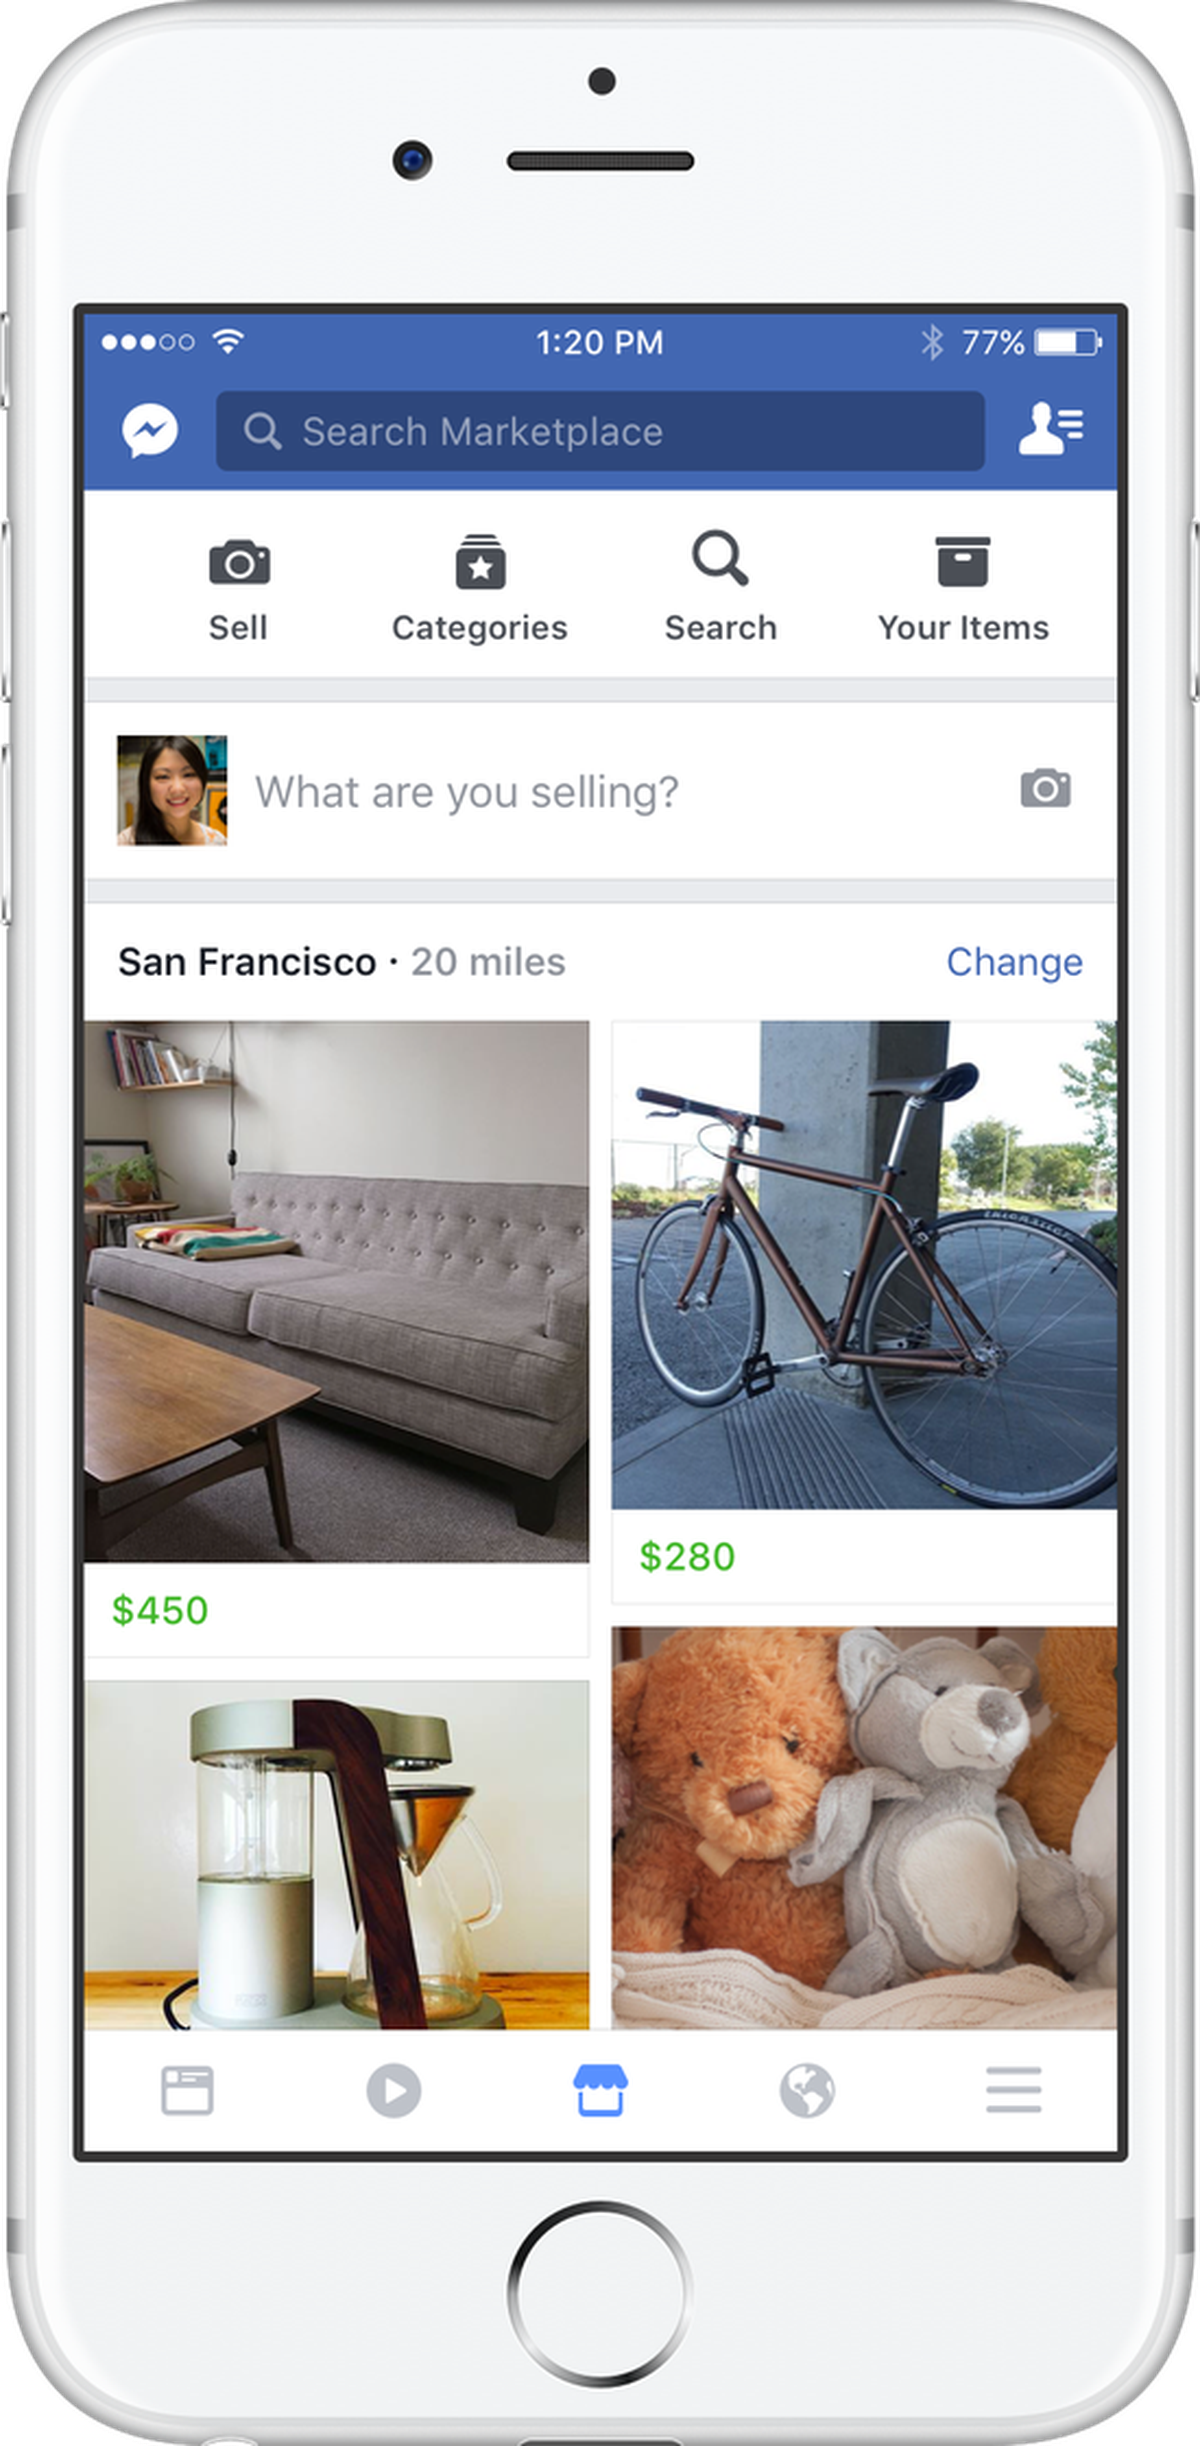 Facebook's New Tool Marketplace Helps You Buy and Sell Items